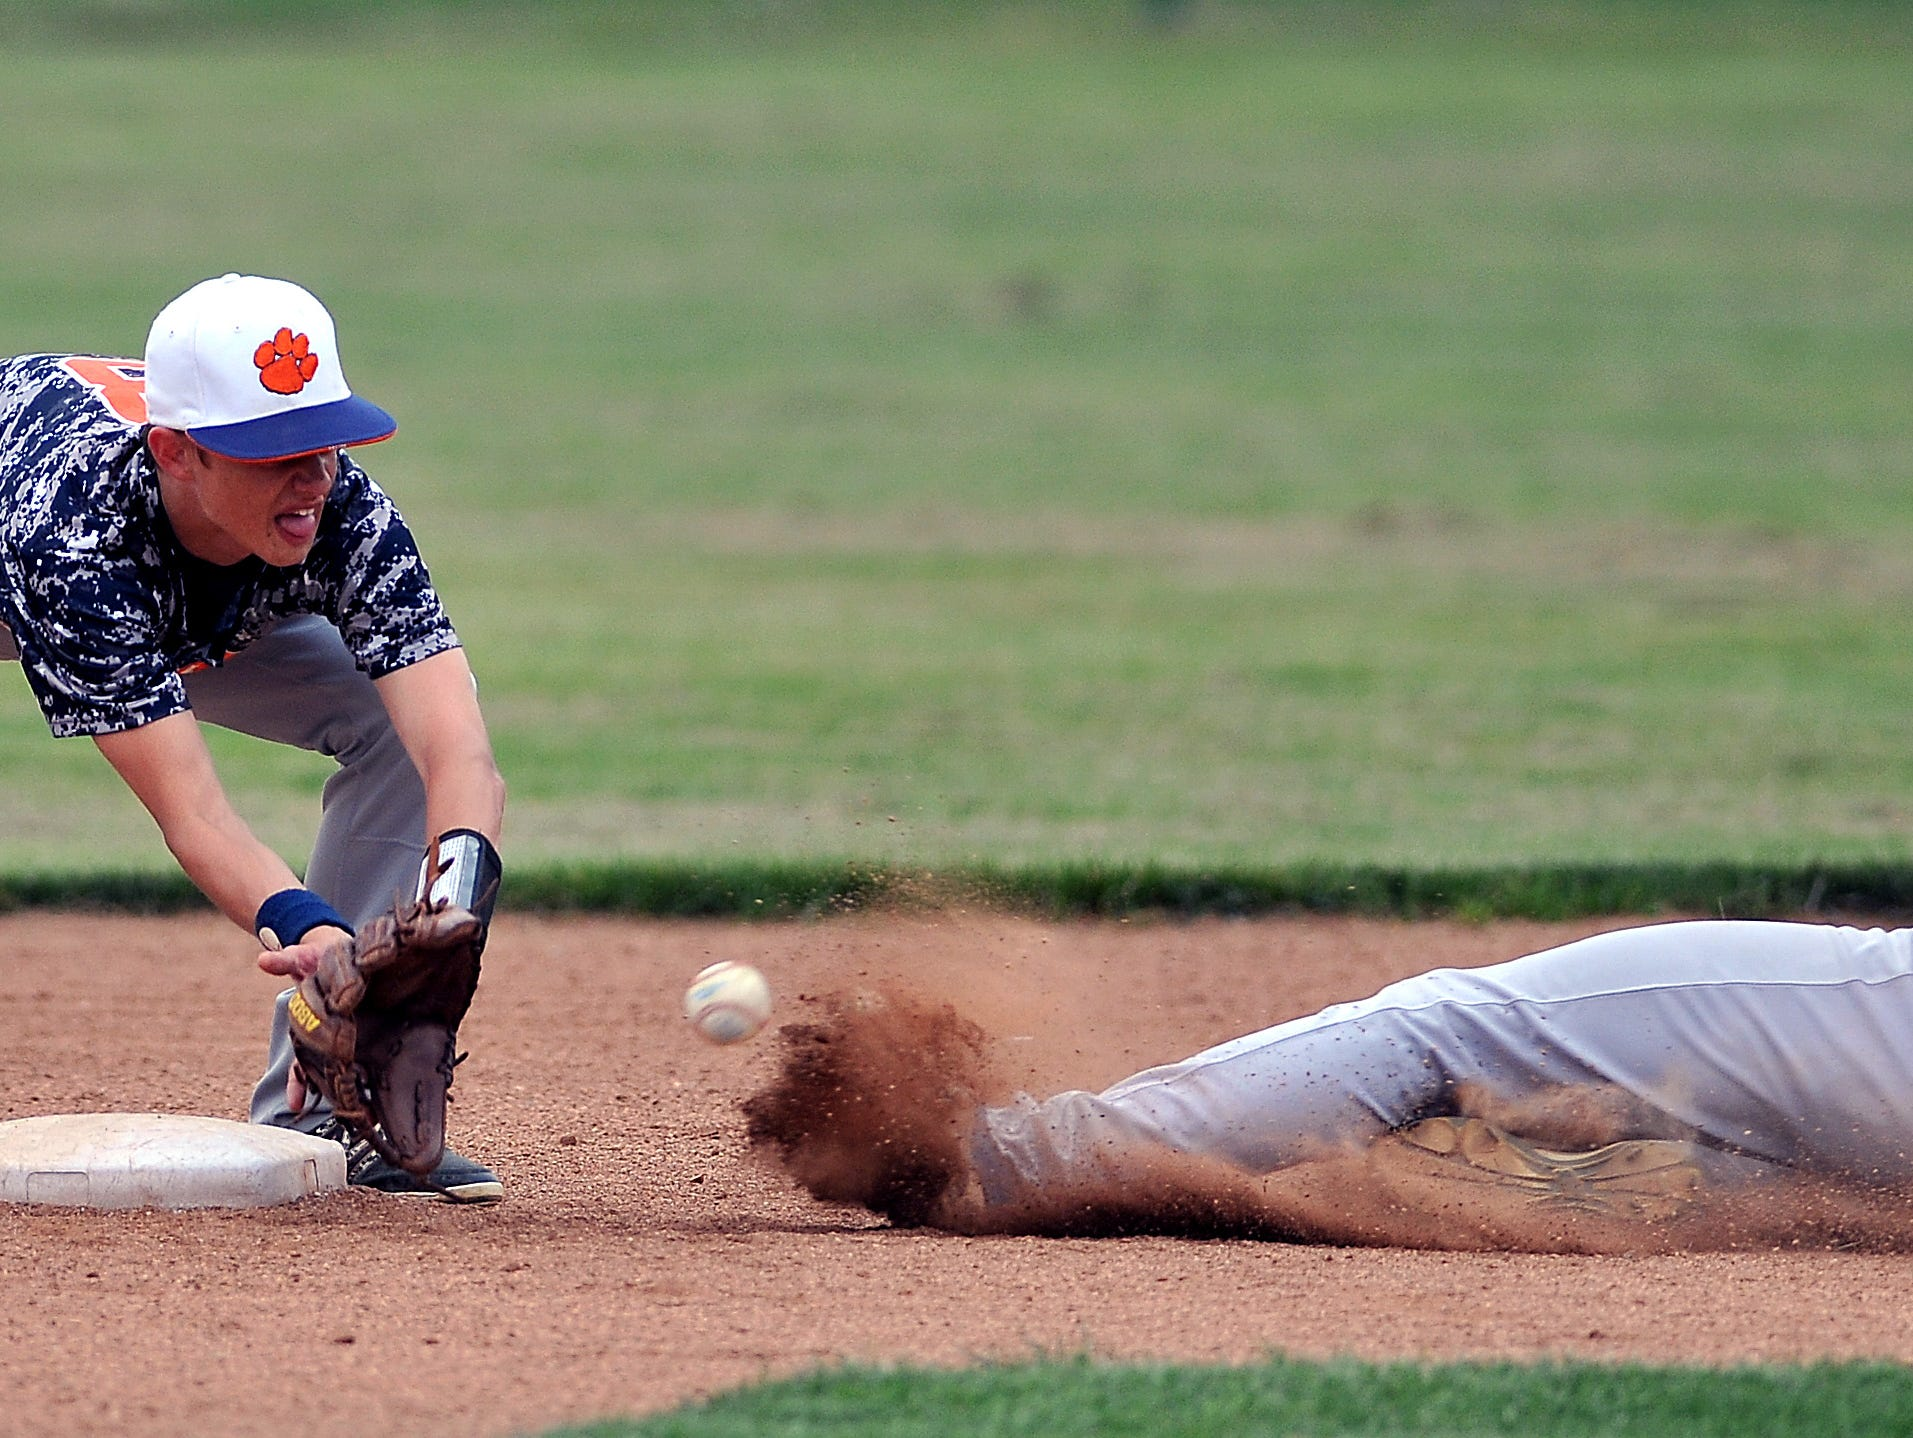 Ontario's Alex Vredenburgh slides safely into second just before the tag by Galion's Chad Karnes during the Division II sectional title baseball game at Ontario Thursday.